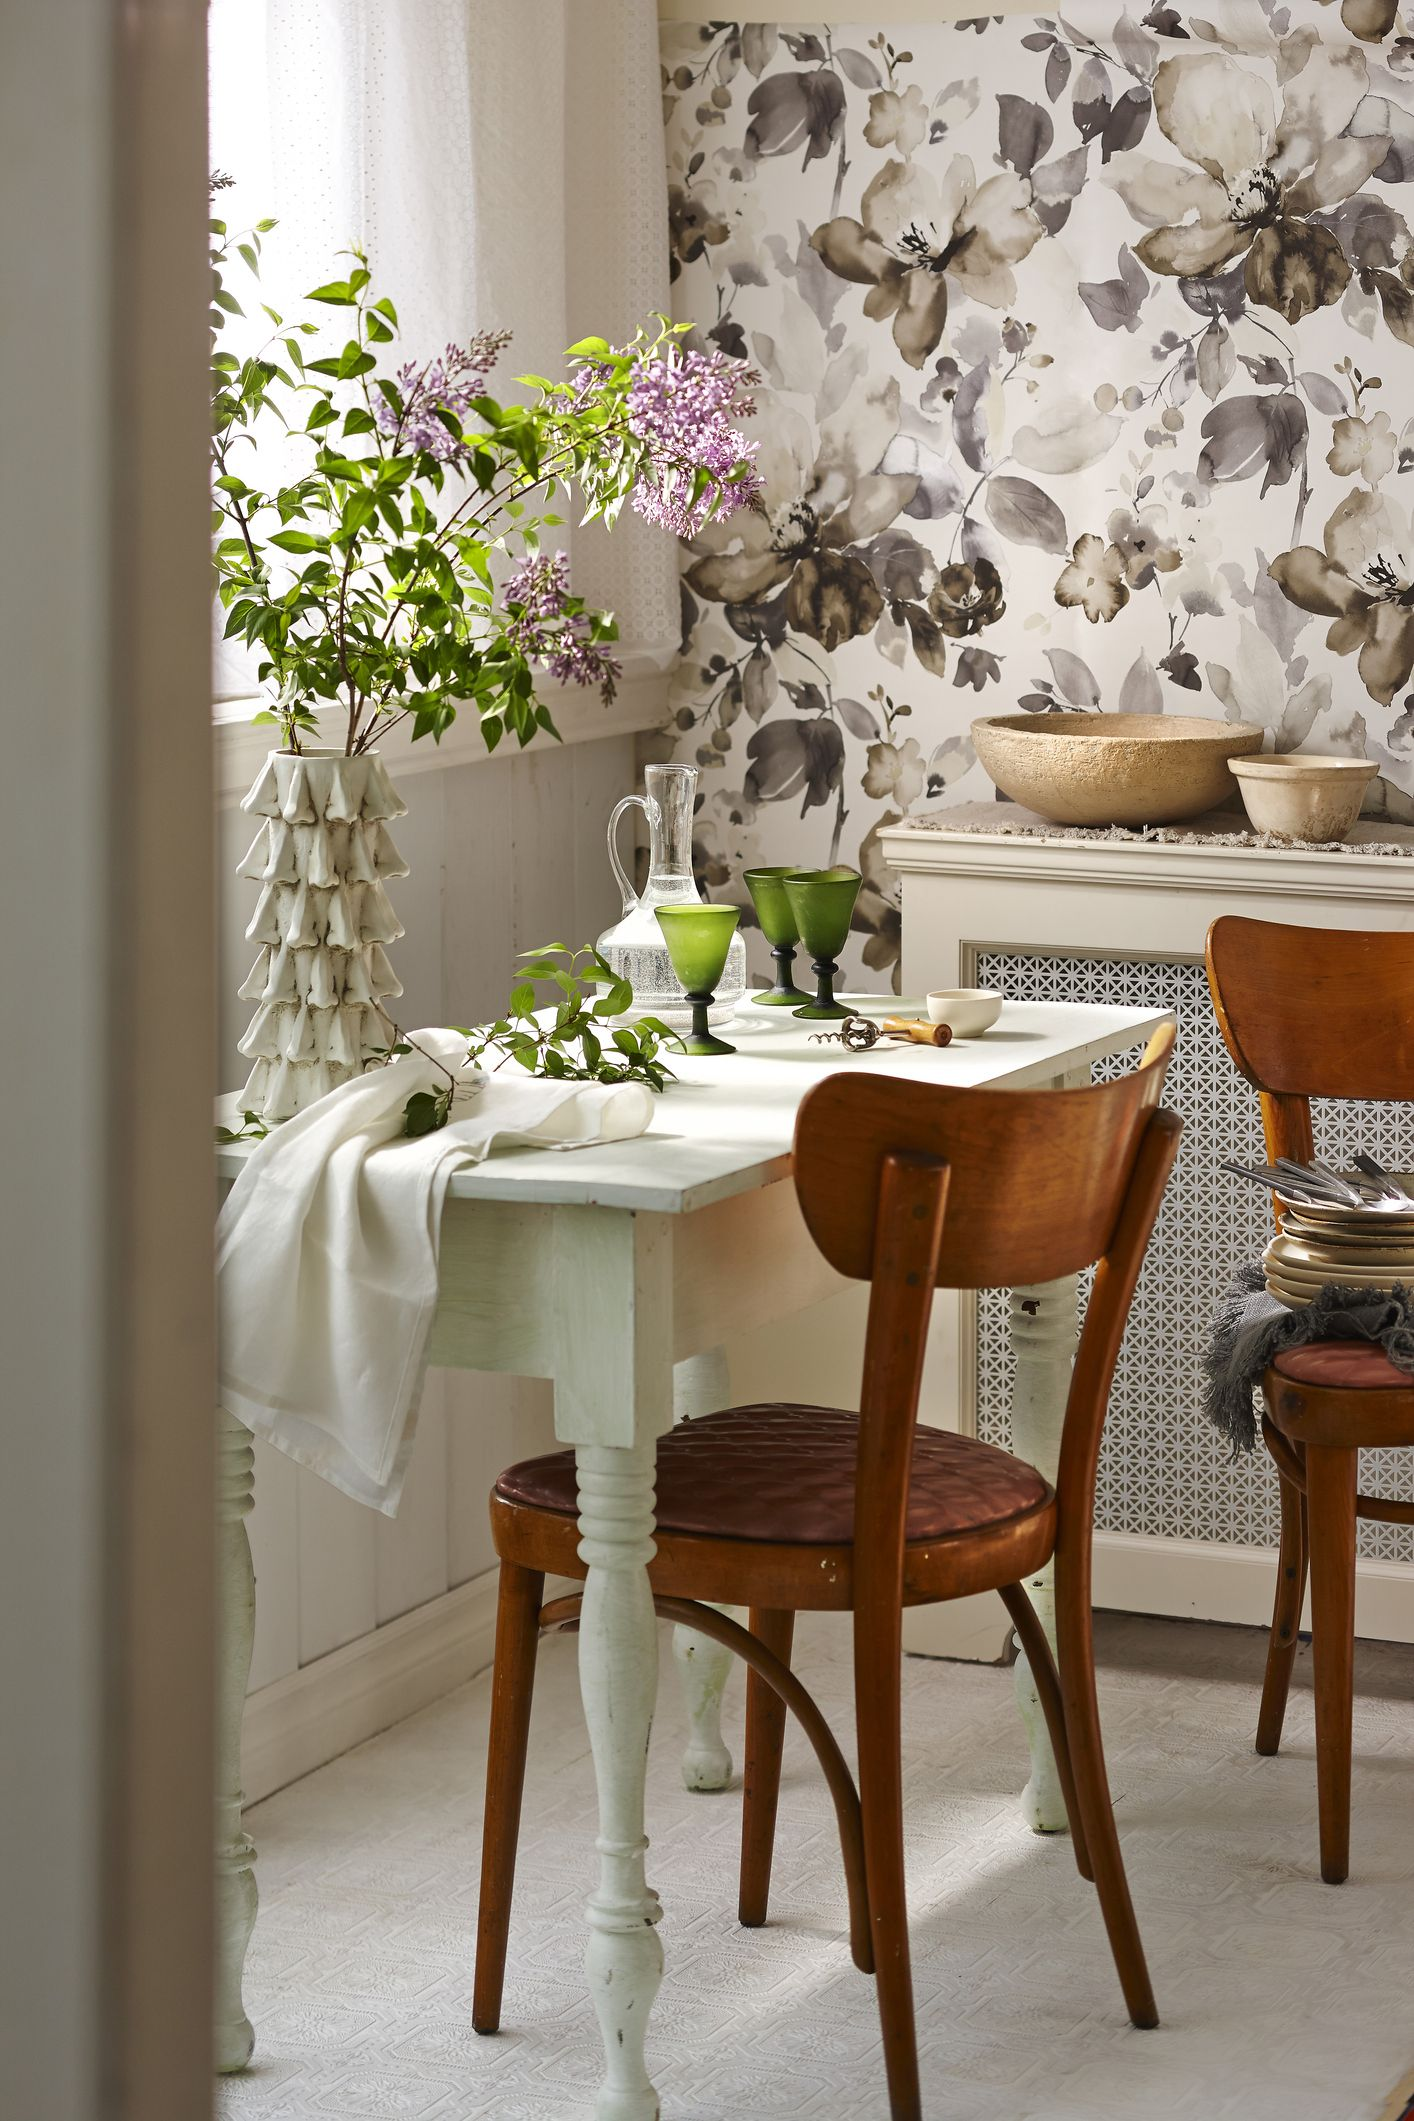 Rustic Dining Room With Table Setting And Chairs